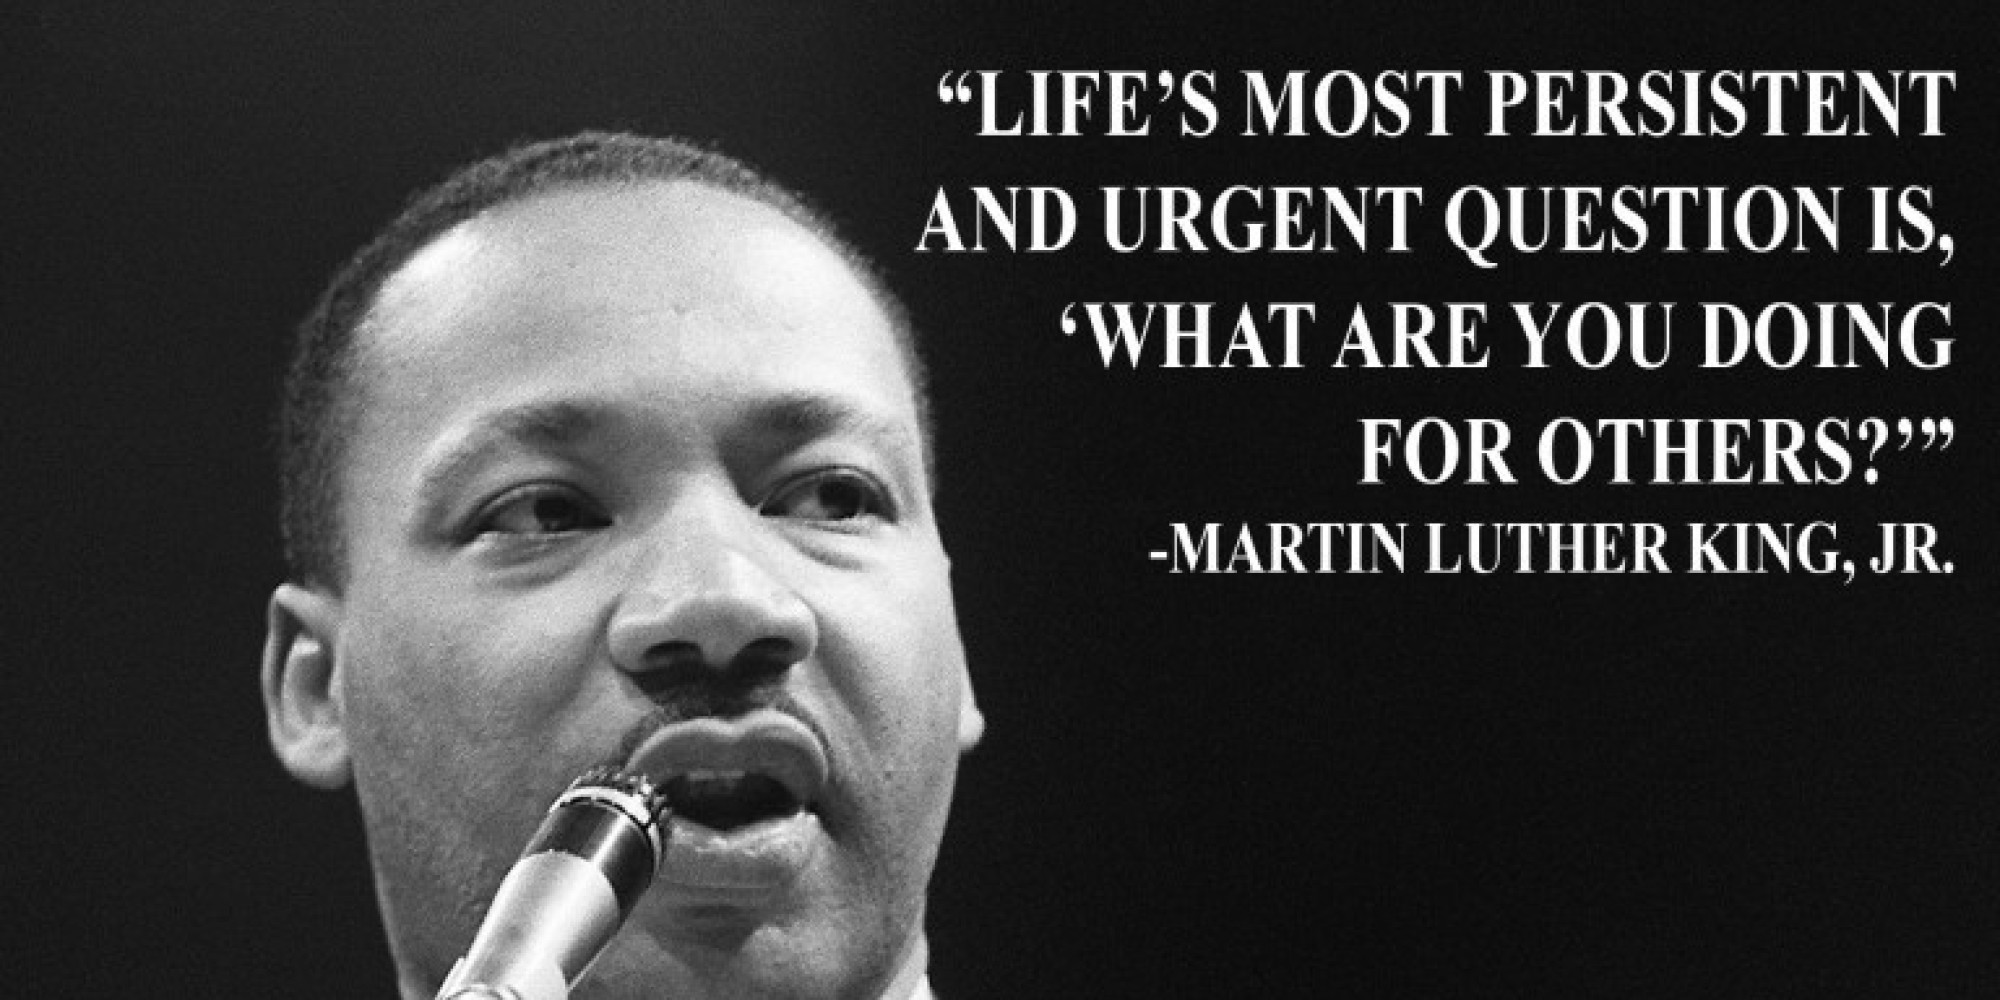 Images Of Martin Luther King Quotes Mlk Jrasked Us 'what Are You Doing For Others' Here's How We